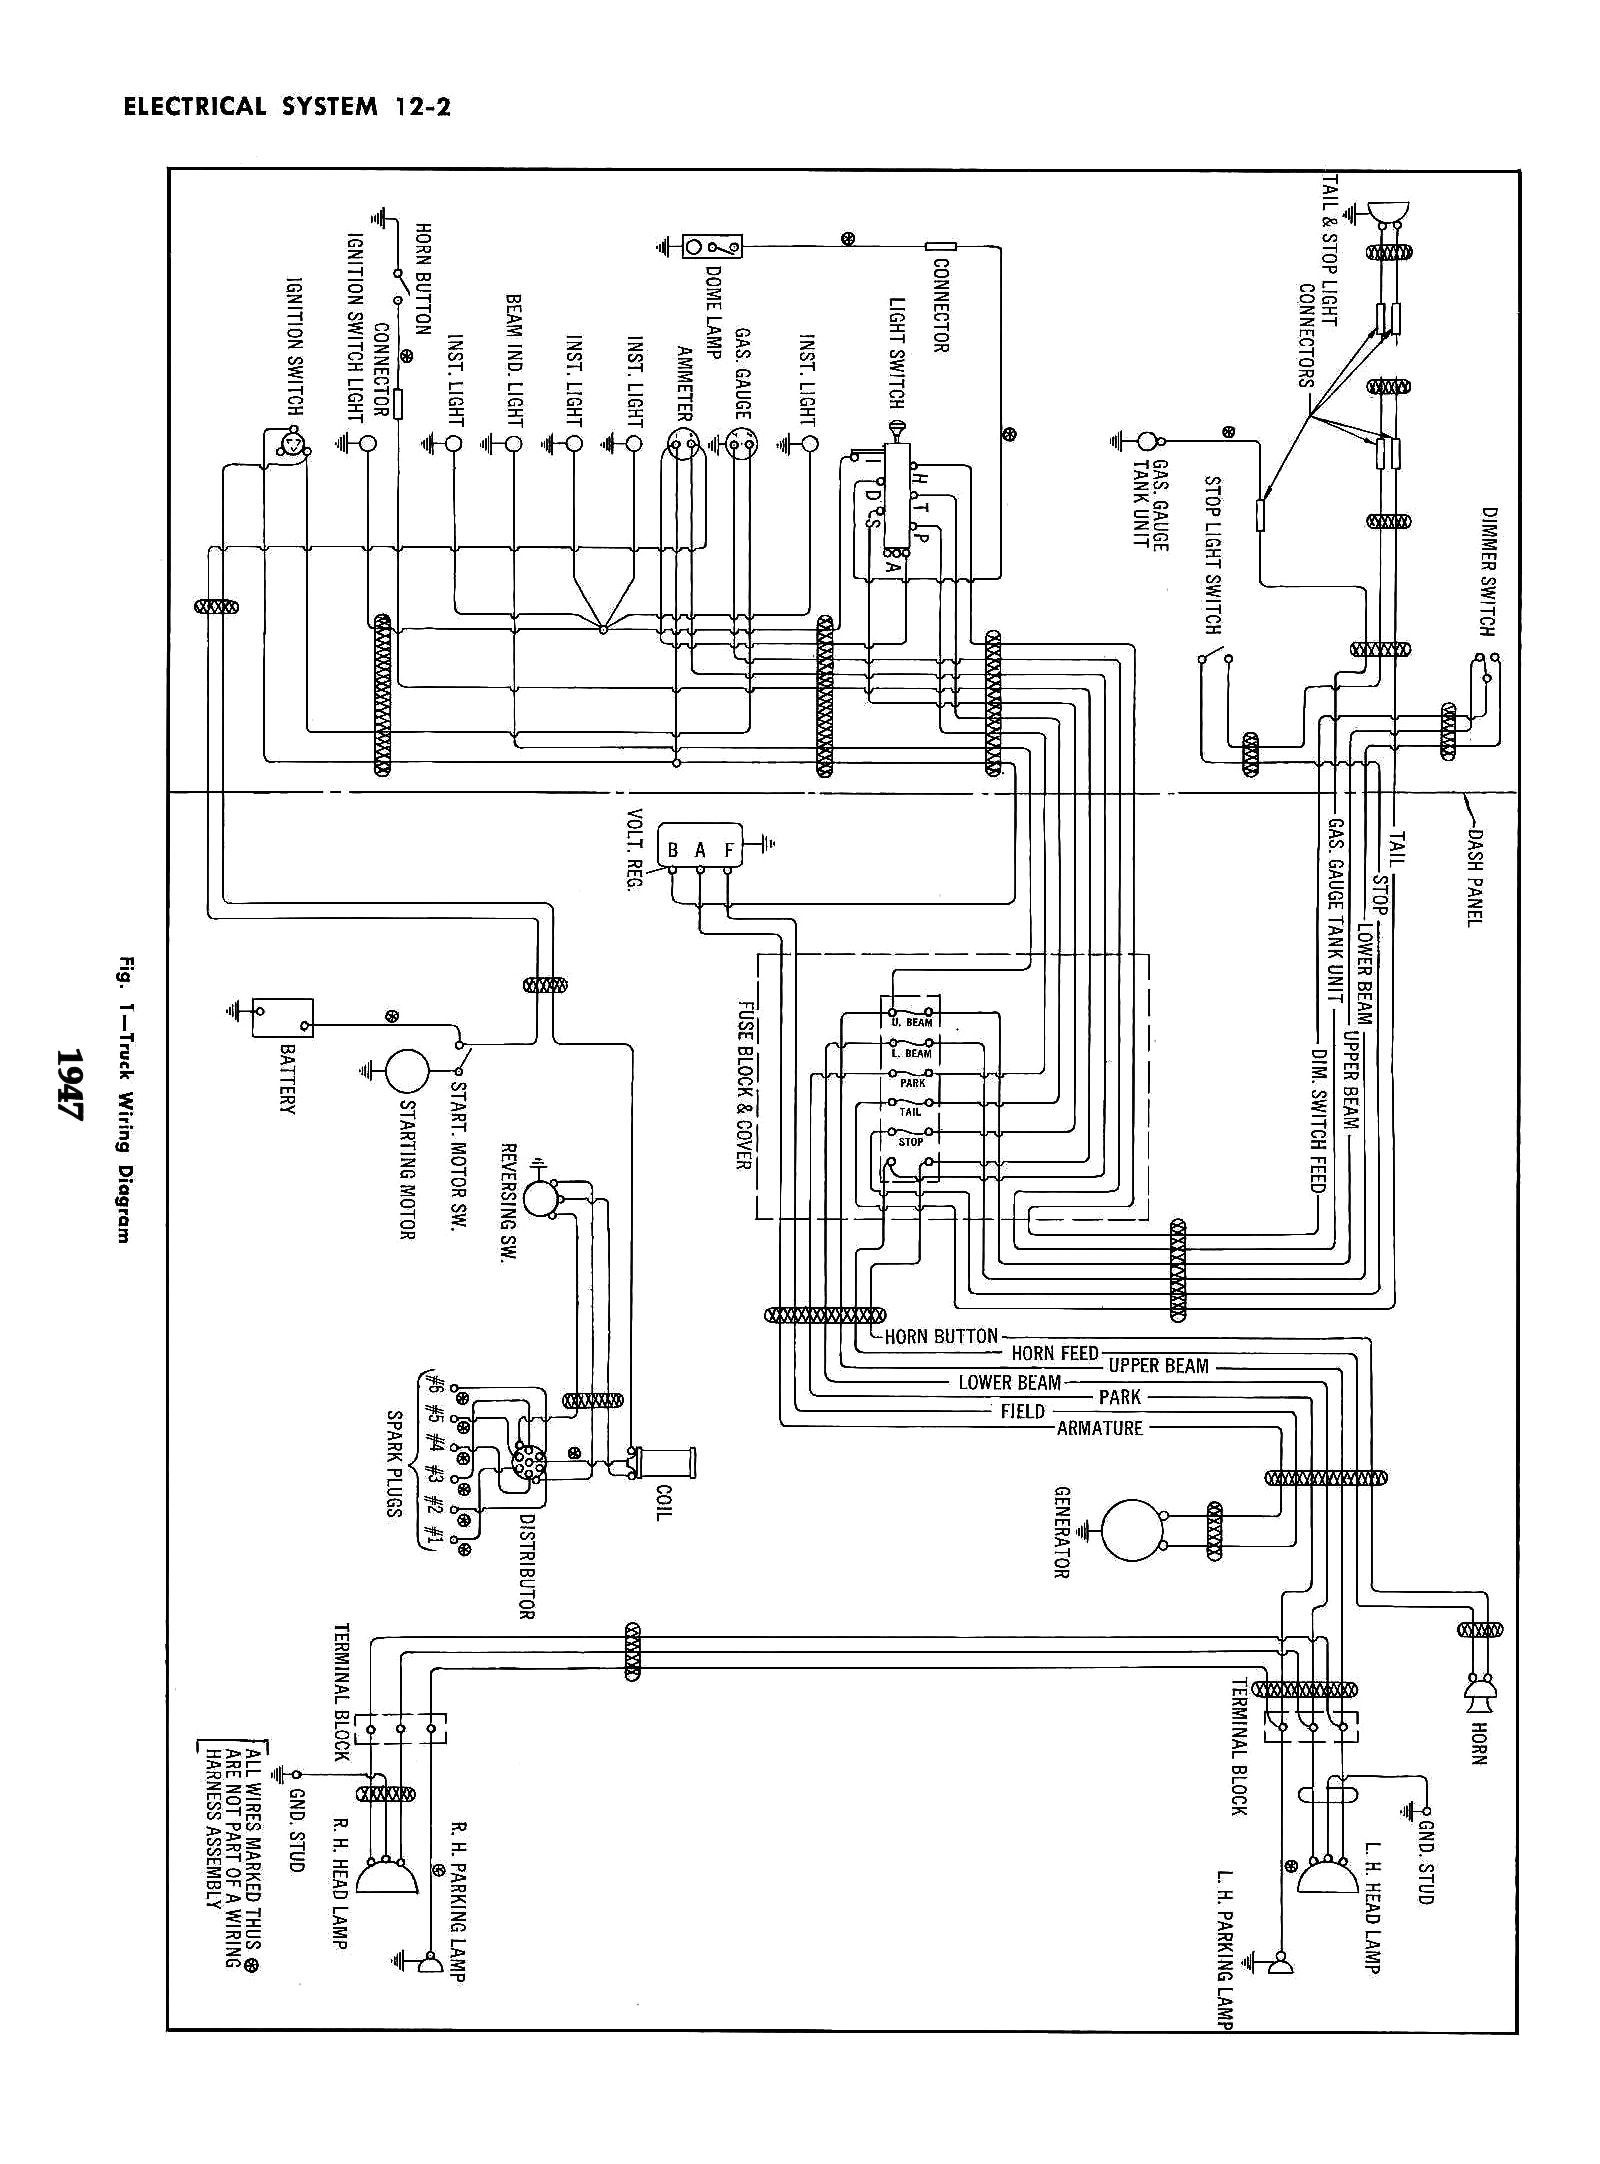 hight resolution of ford 4600 wiring harness data wiring diagramford 4600 wiring diagram light wiring diagram toolbox ford 4600